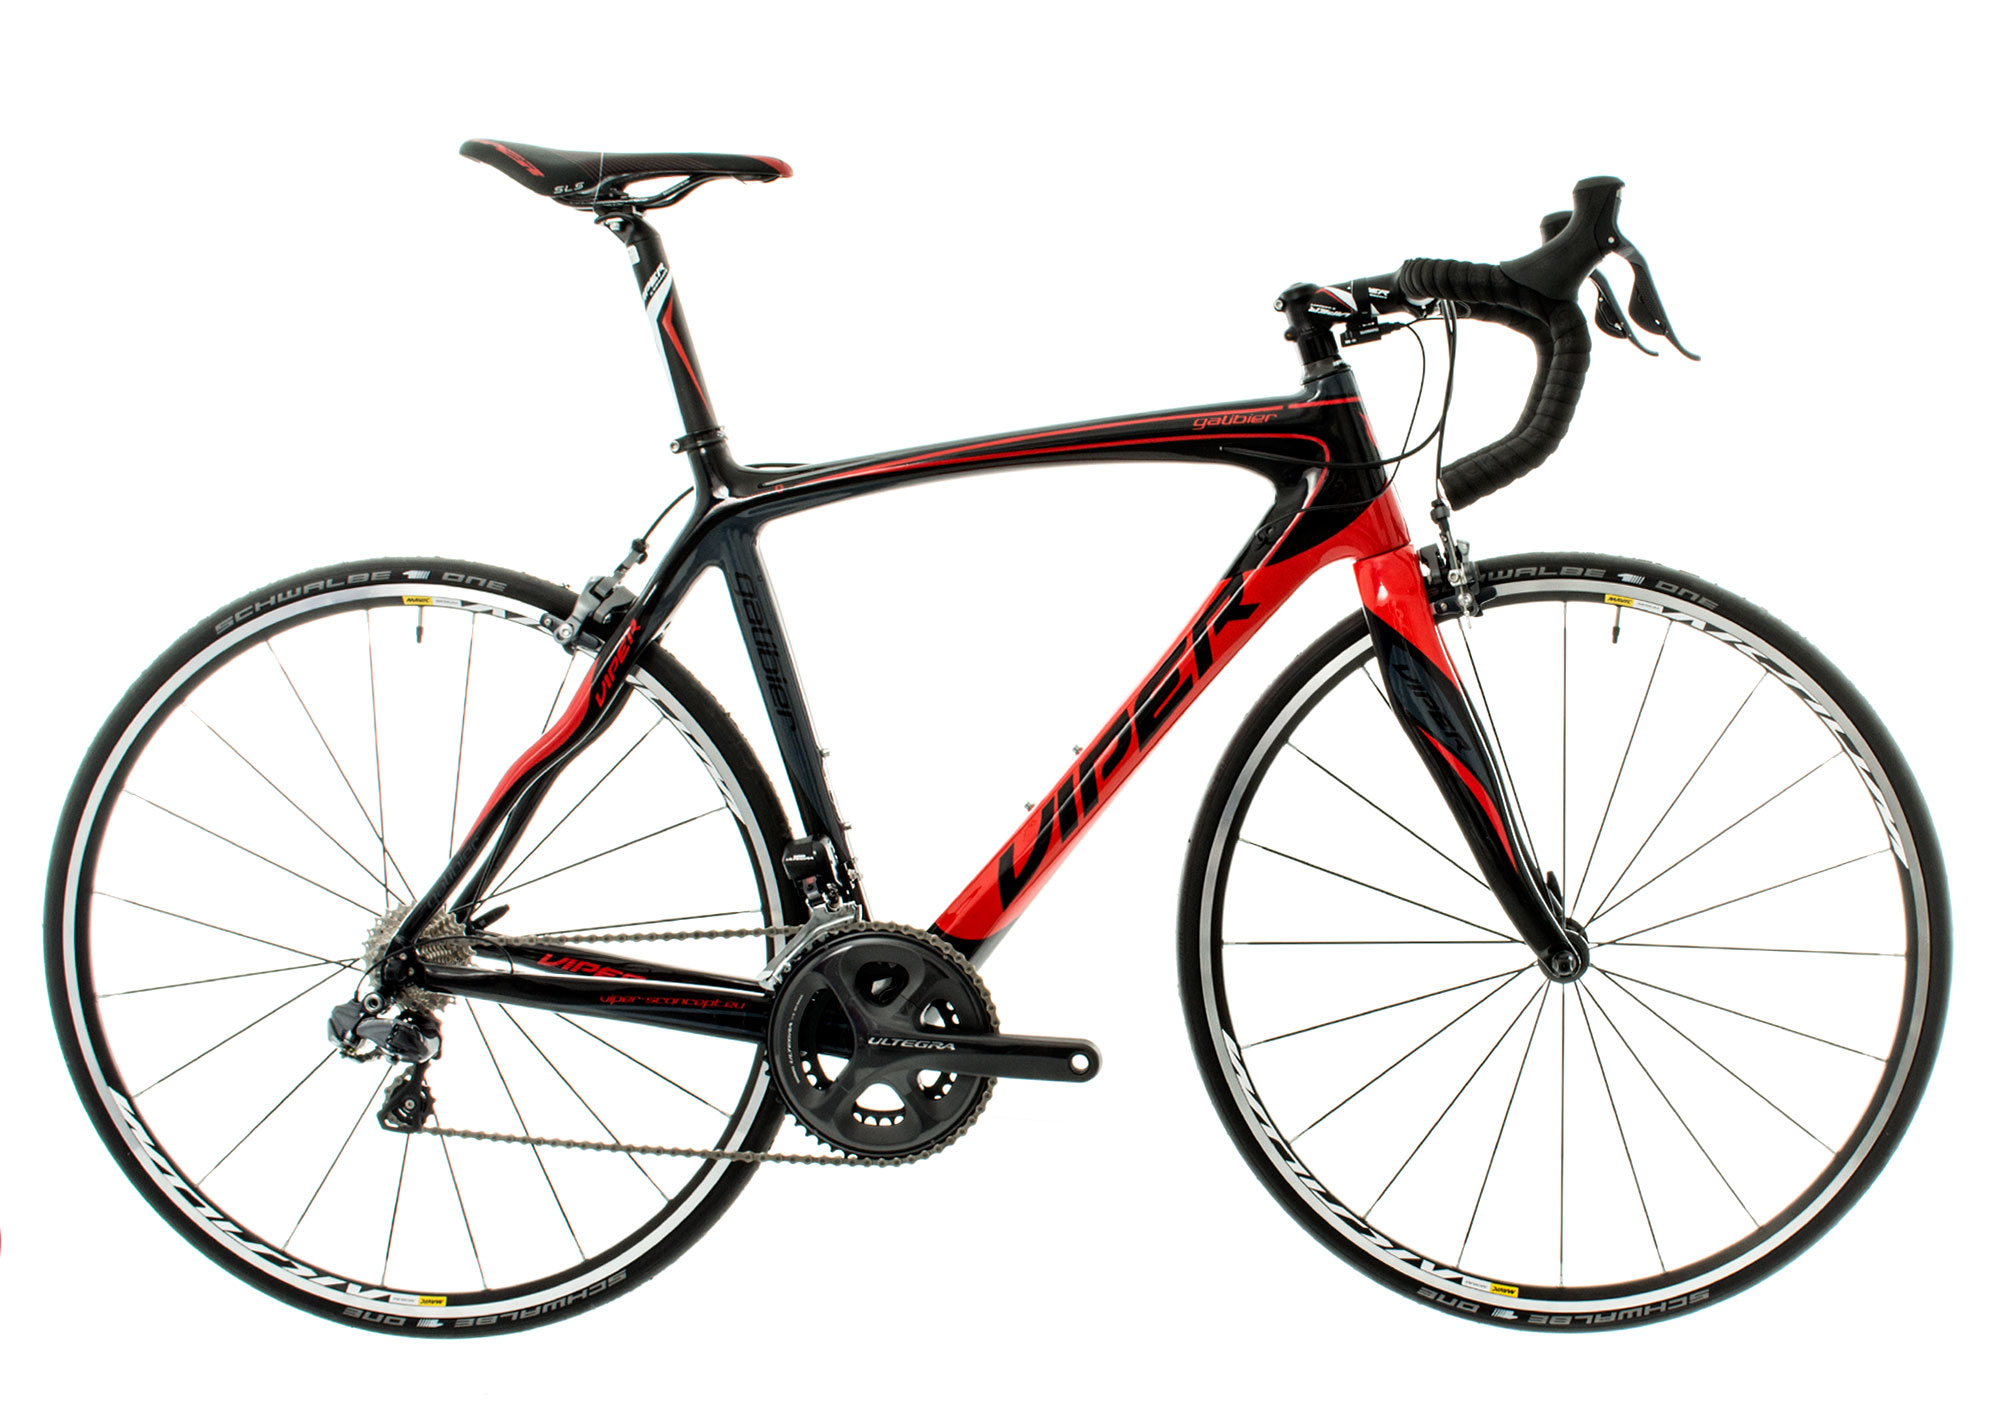 567a763e1ef41 viper 2016 road bike galibier shimano ultegra di2 11s grey red  at n-0.co